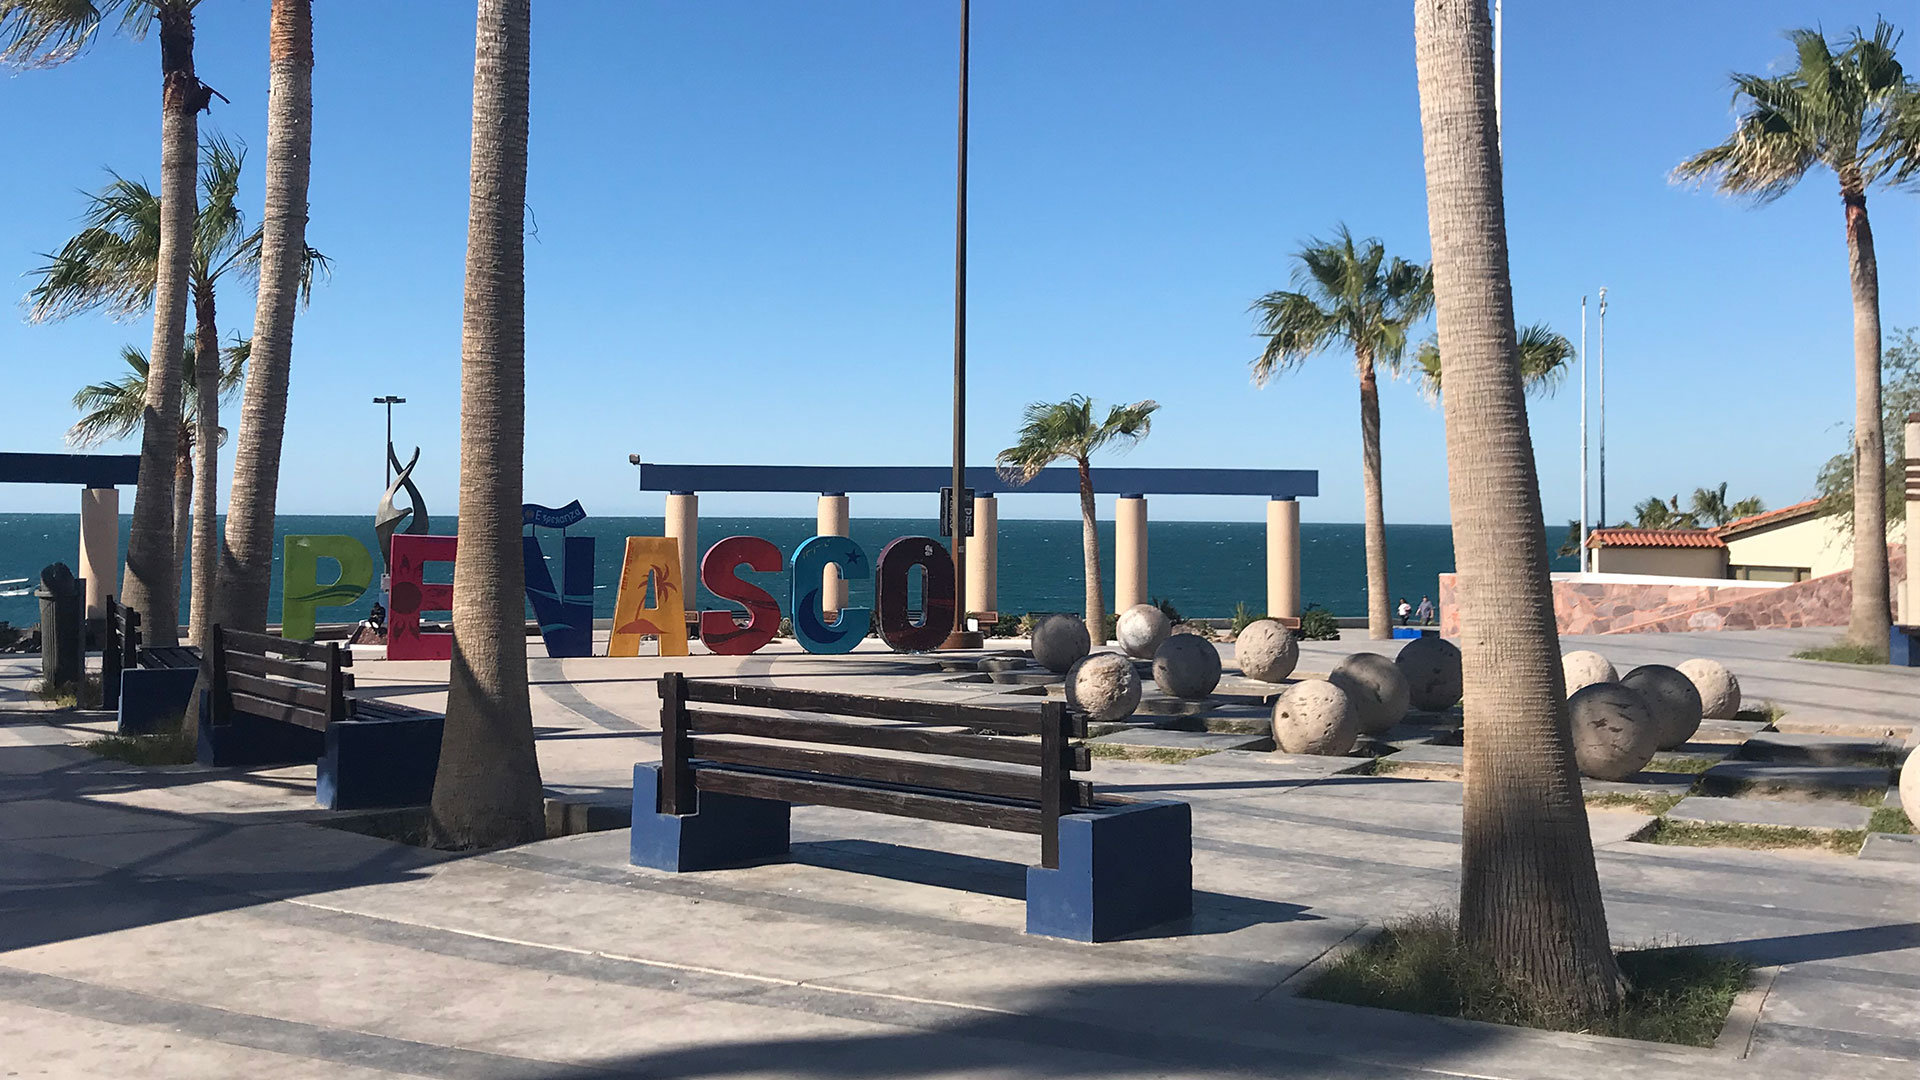 Puerto Peñasco (Rocky Point), Mexico attracts thousands of visitors from Arizona and other places who are seeking sun, sand, and surf.  This photo was taken in November 2018.